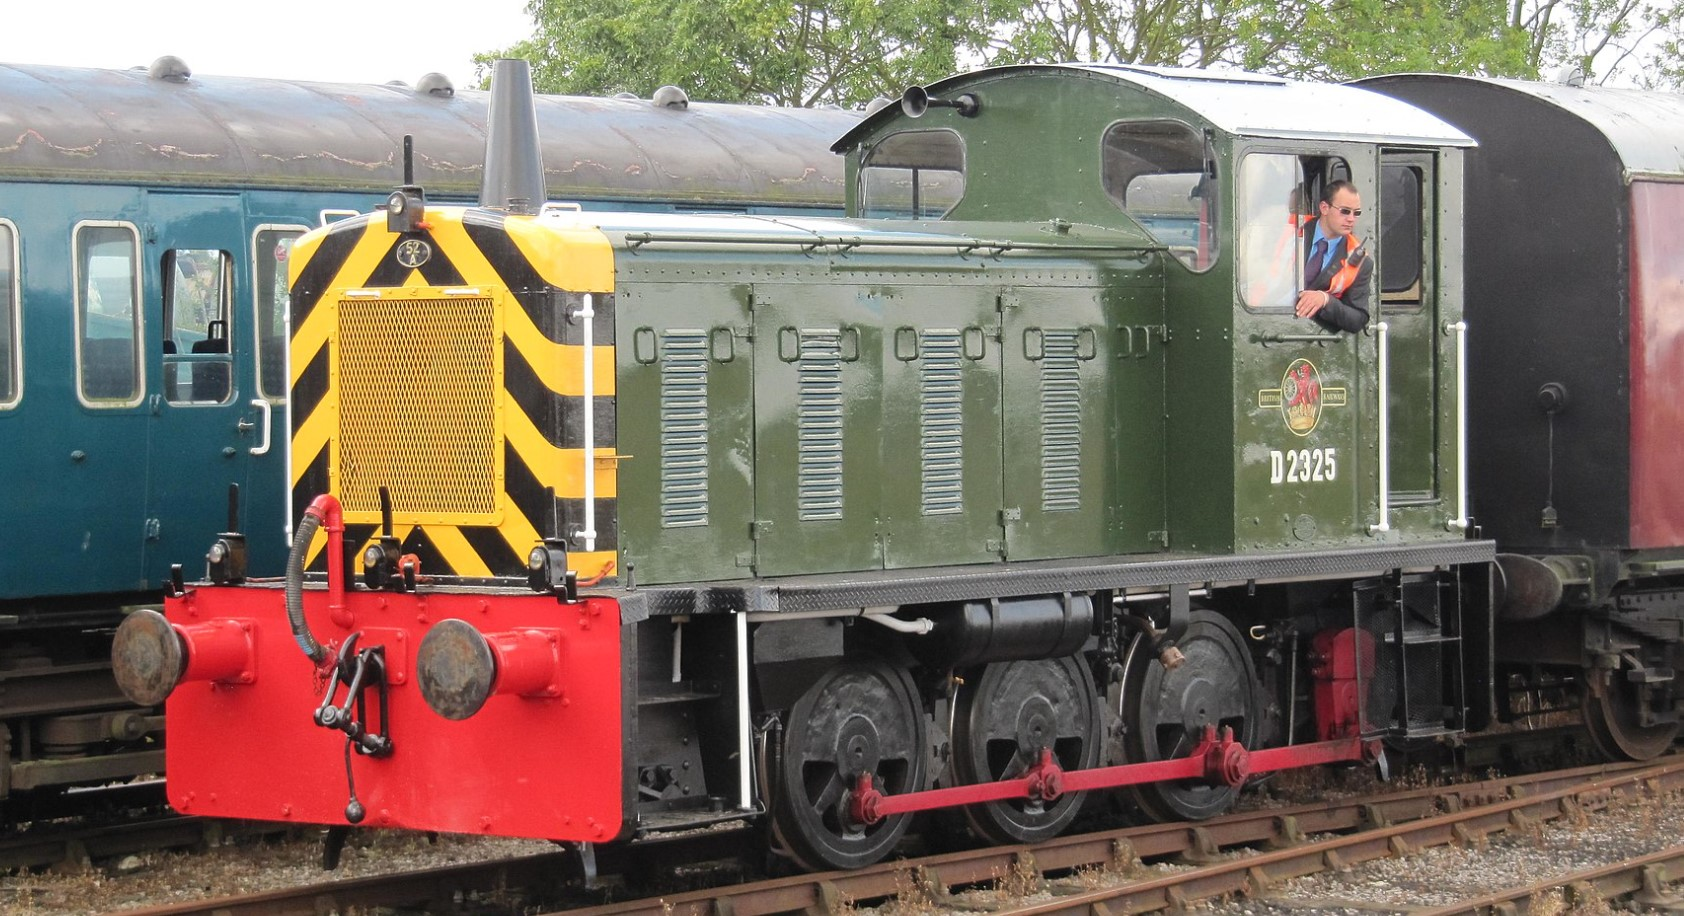 D2325 at the Mangapps Railway Museum in August 2011. ©Justin Foulger